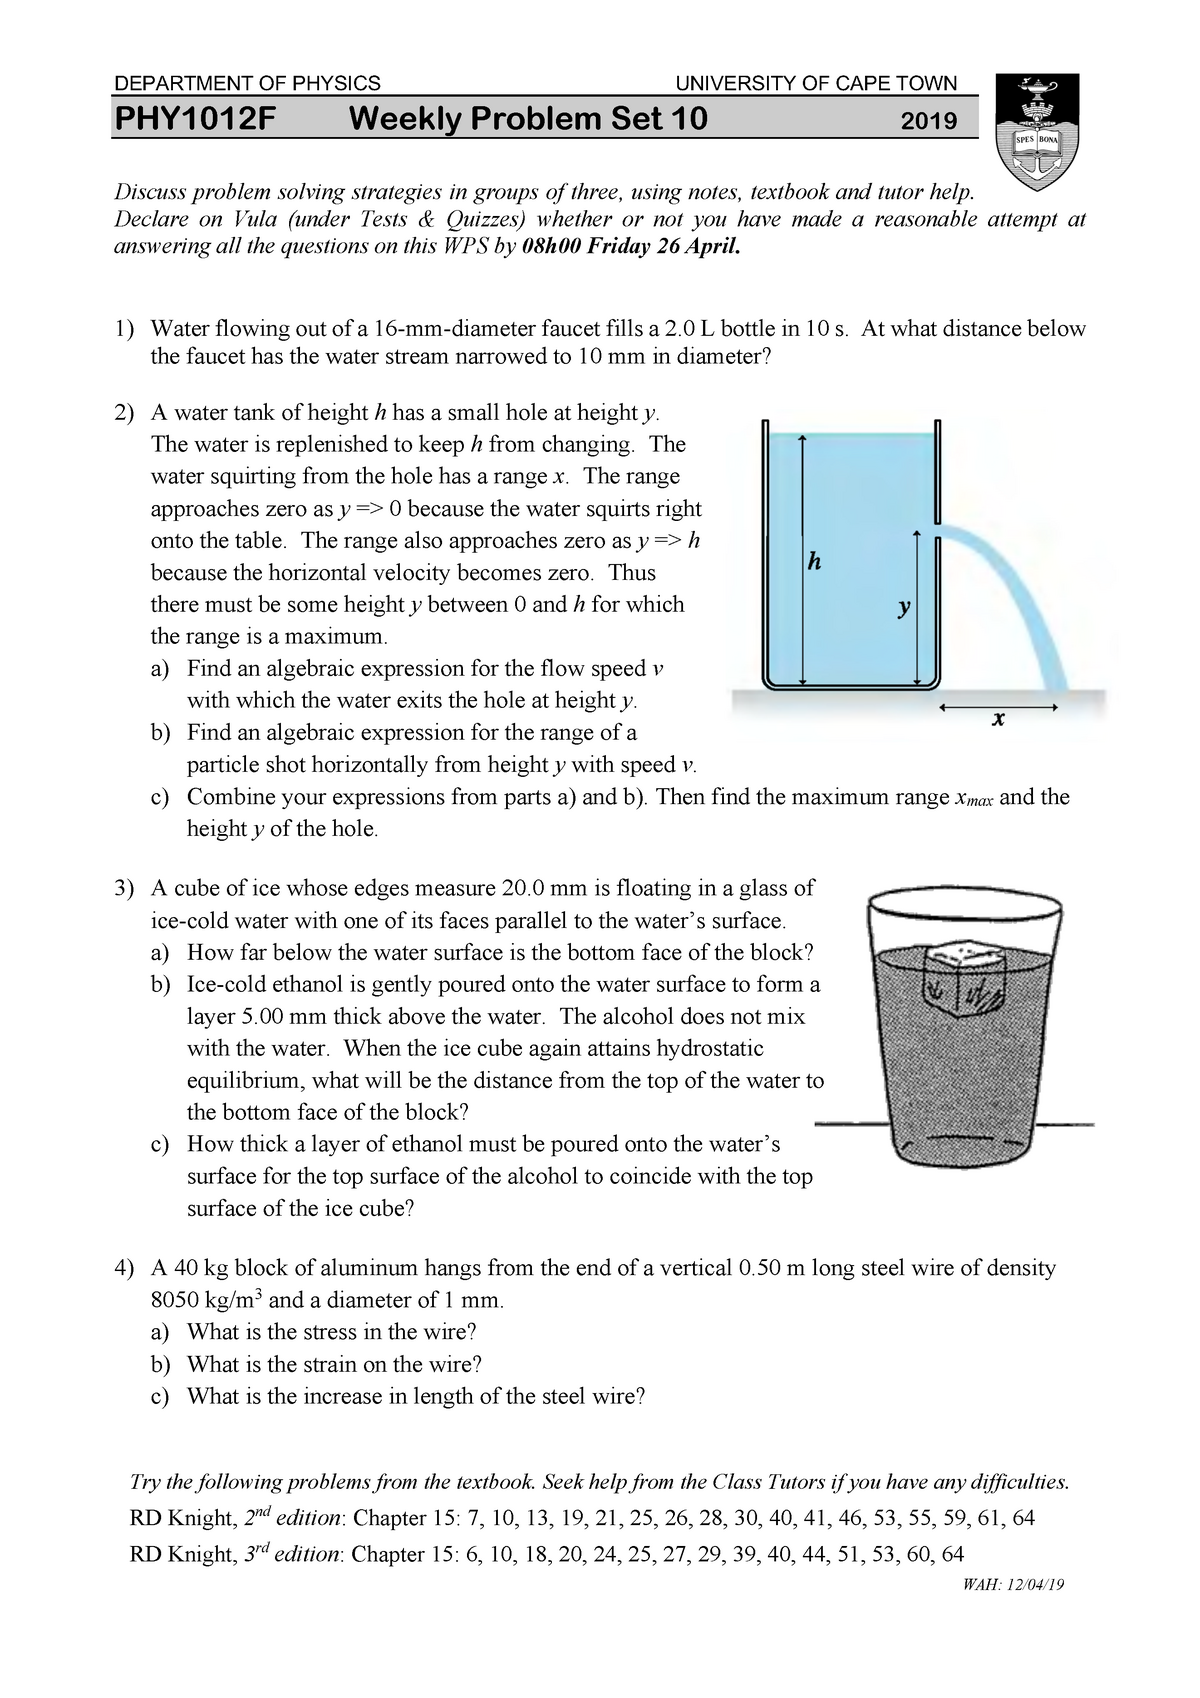 PHY1012F-wps10-19 - Worksheet on Fluids - PHY1012F: Physics for